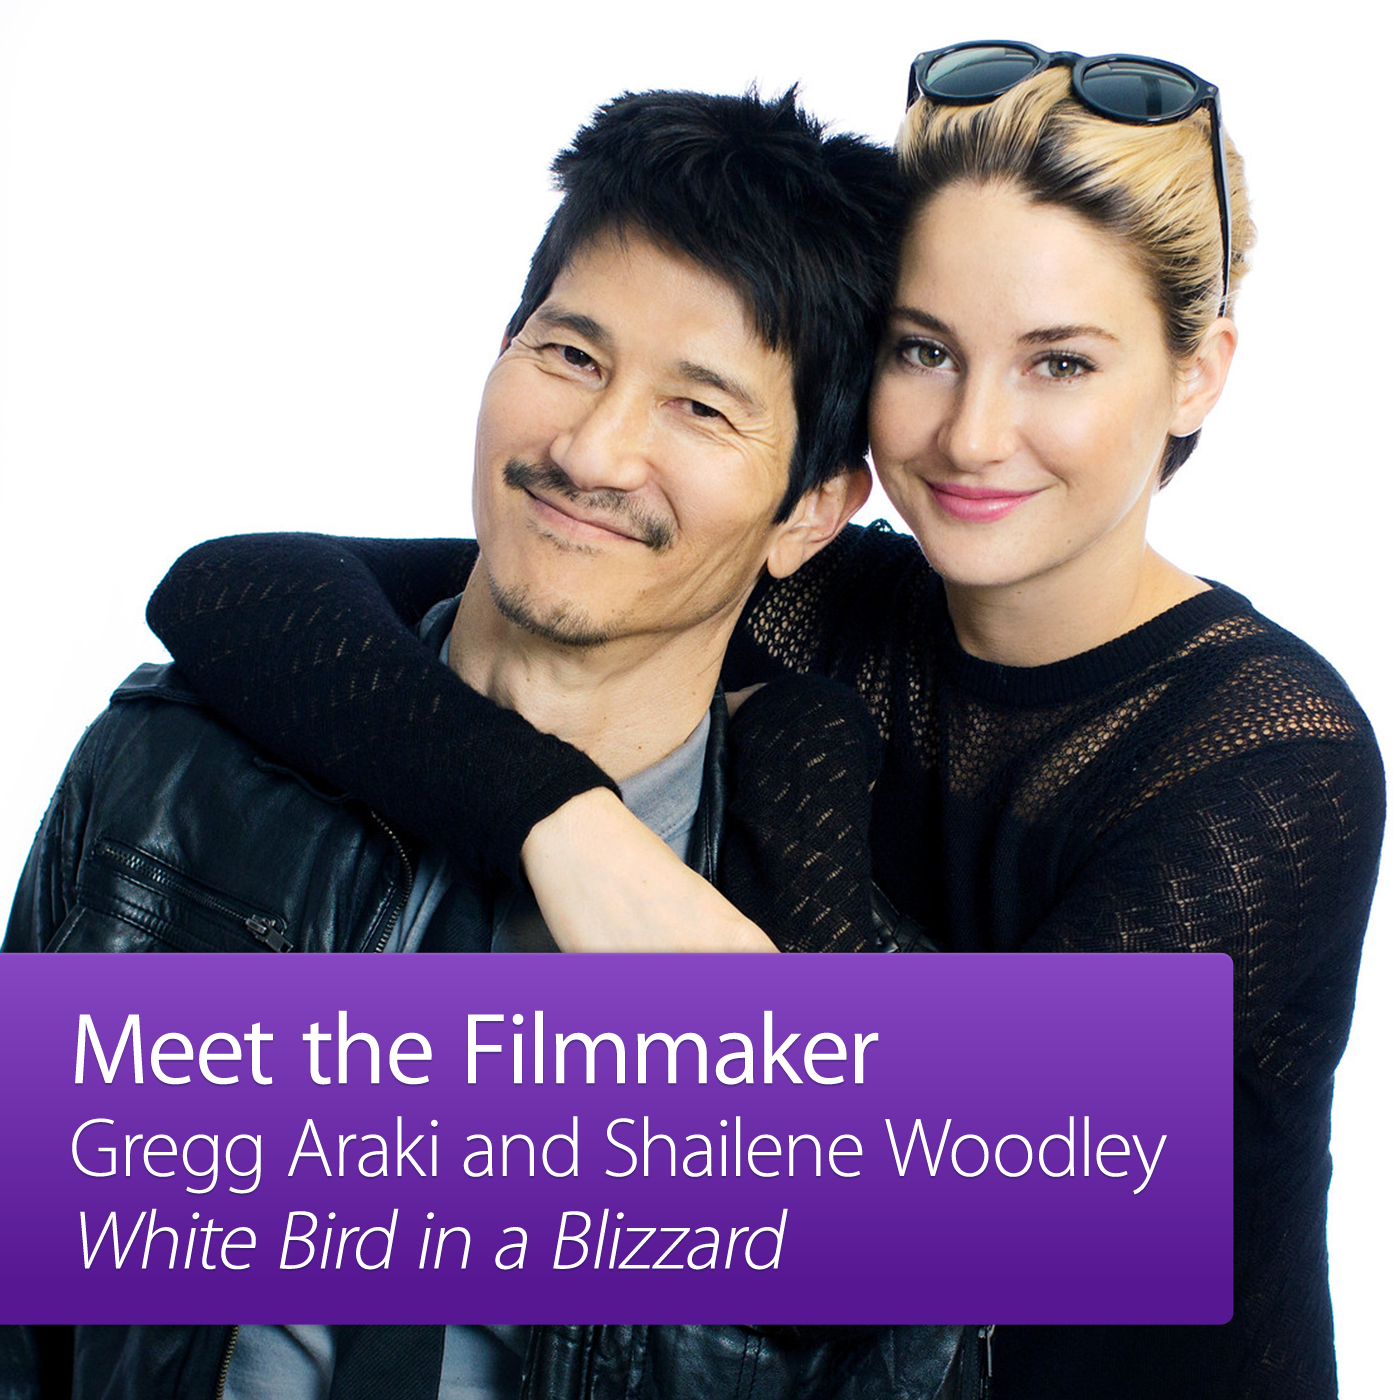 Gregg Araki and Shailene Woodley: Meet the Filmmaker